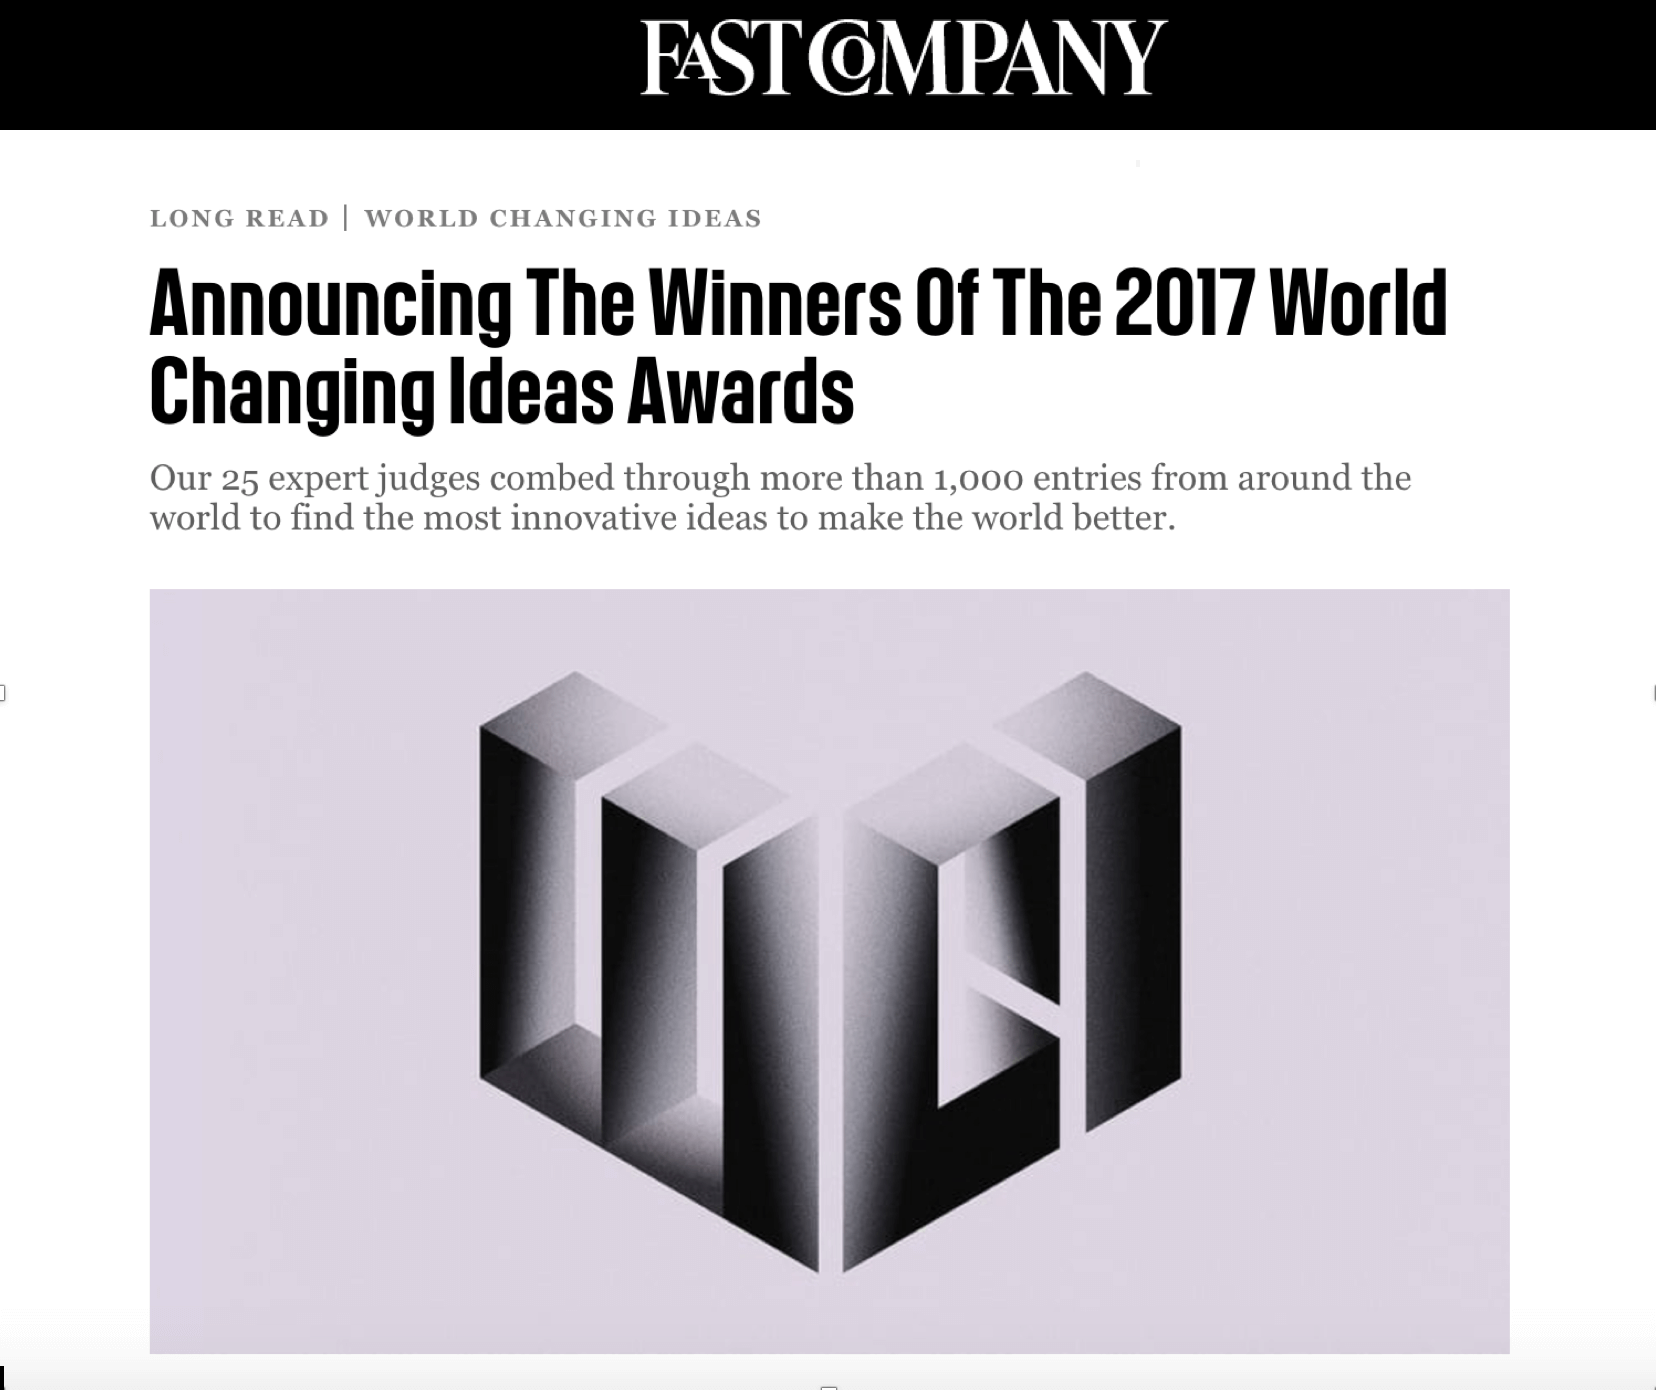 BACtrack® Skyn Named Finalist in Fast Company's World Changing Ideas Awards